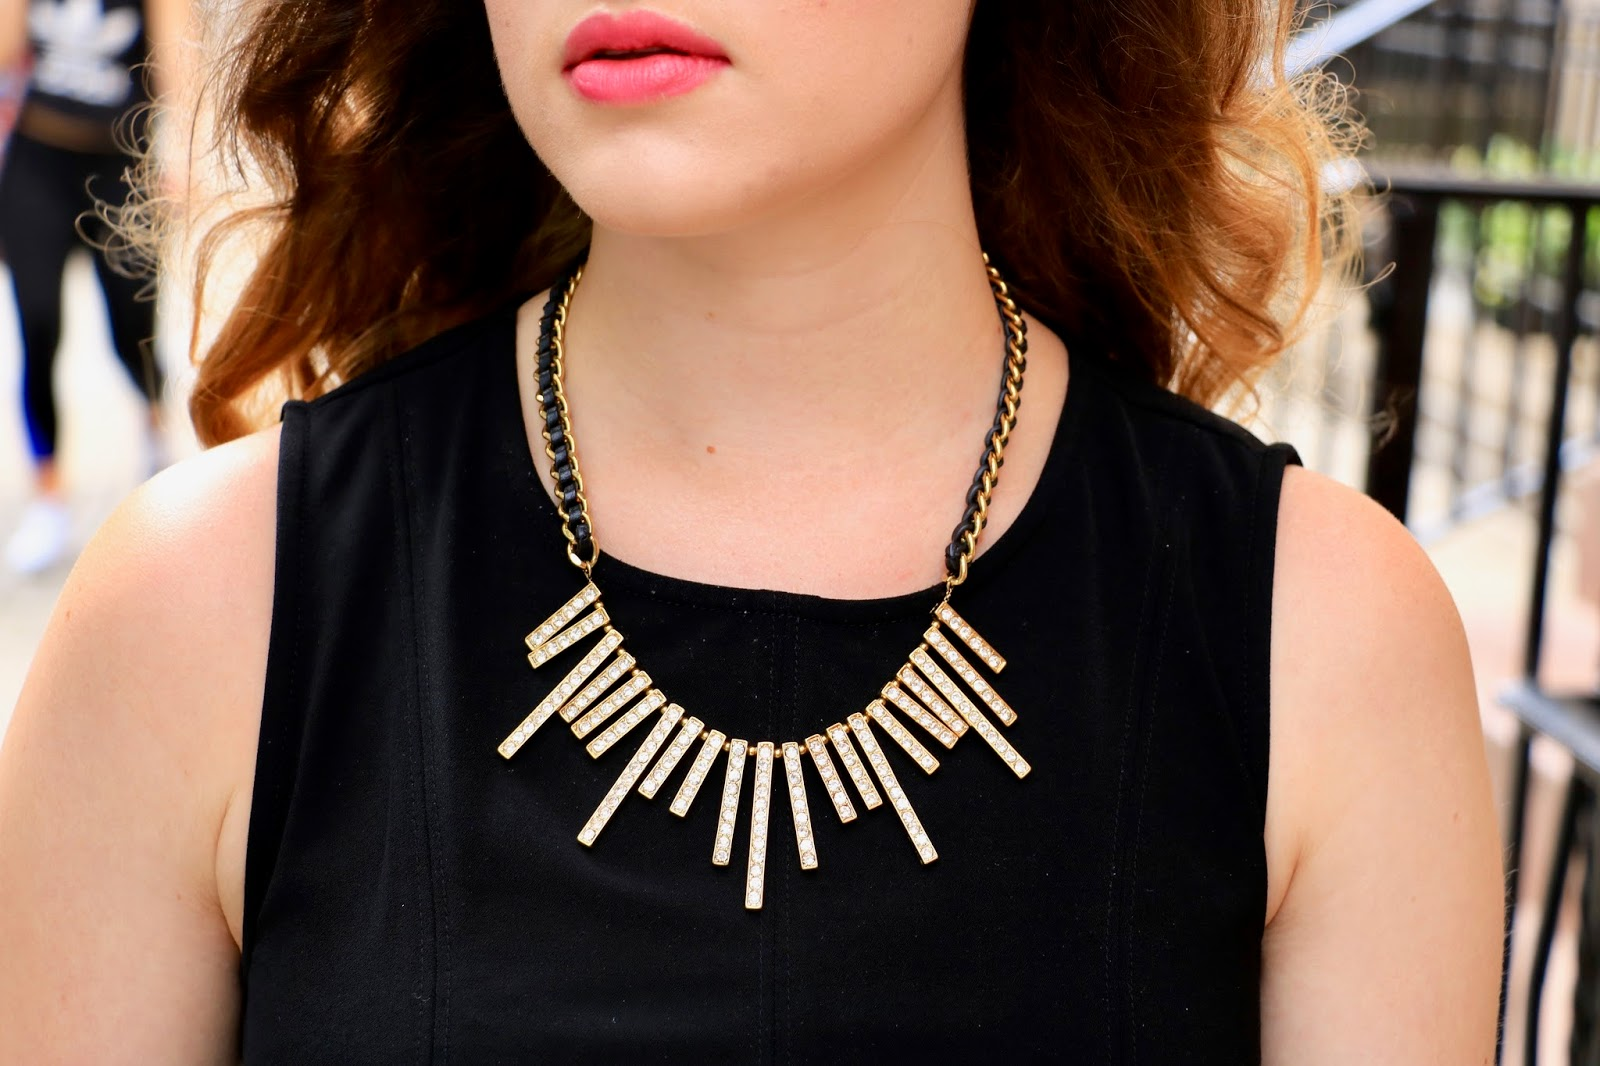 nyc fashion blogger Kathleen Harper wearing a gold and black statement necklace